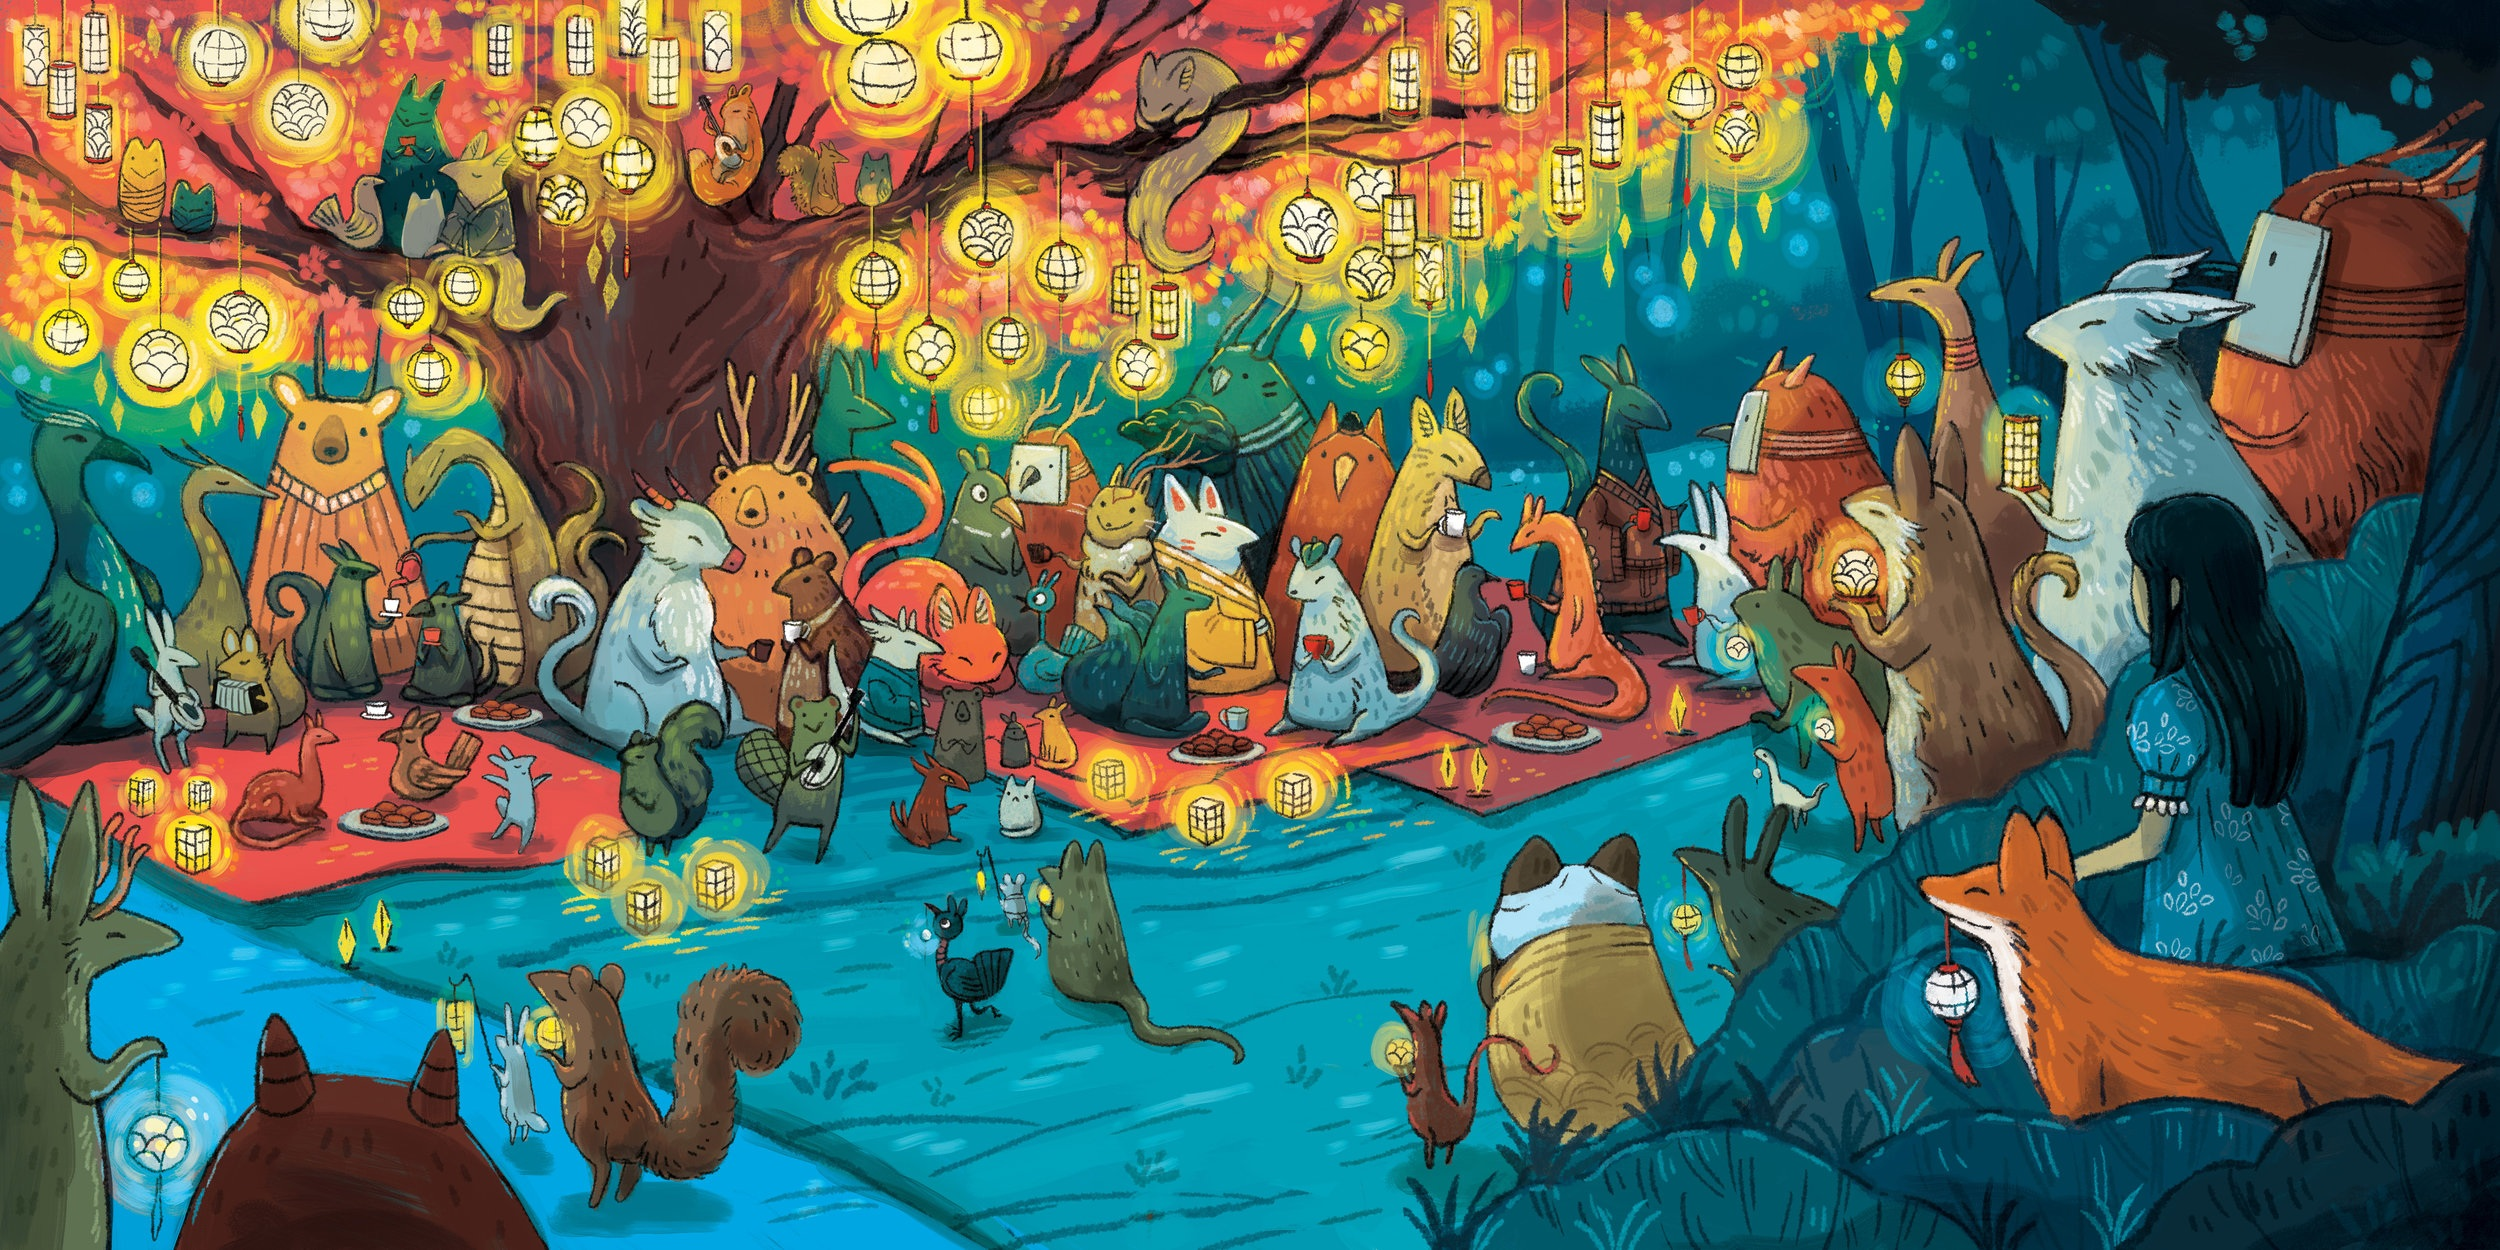 Spread For Upcoming book called   NIGHT FESTIVAL